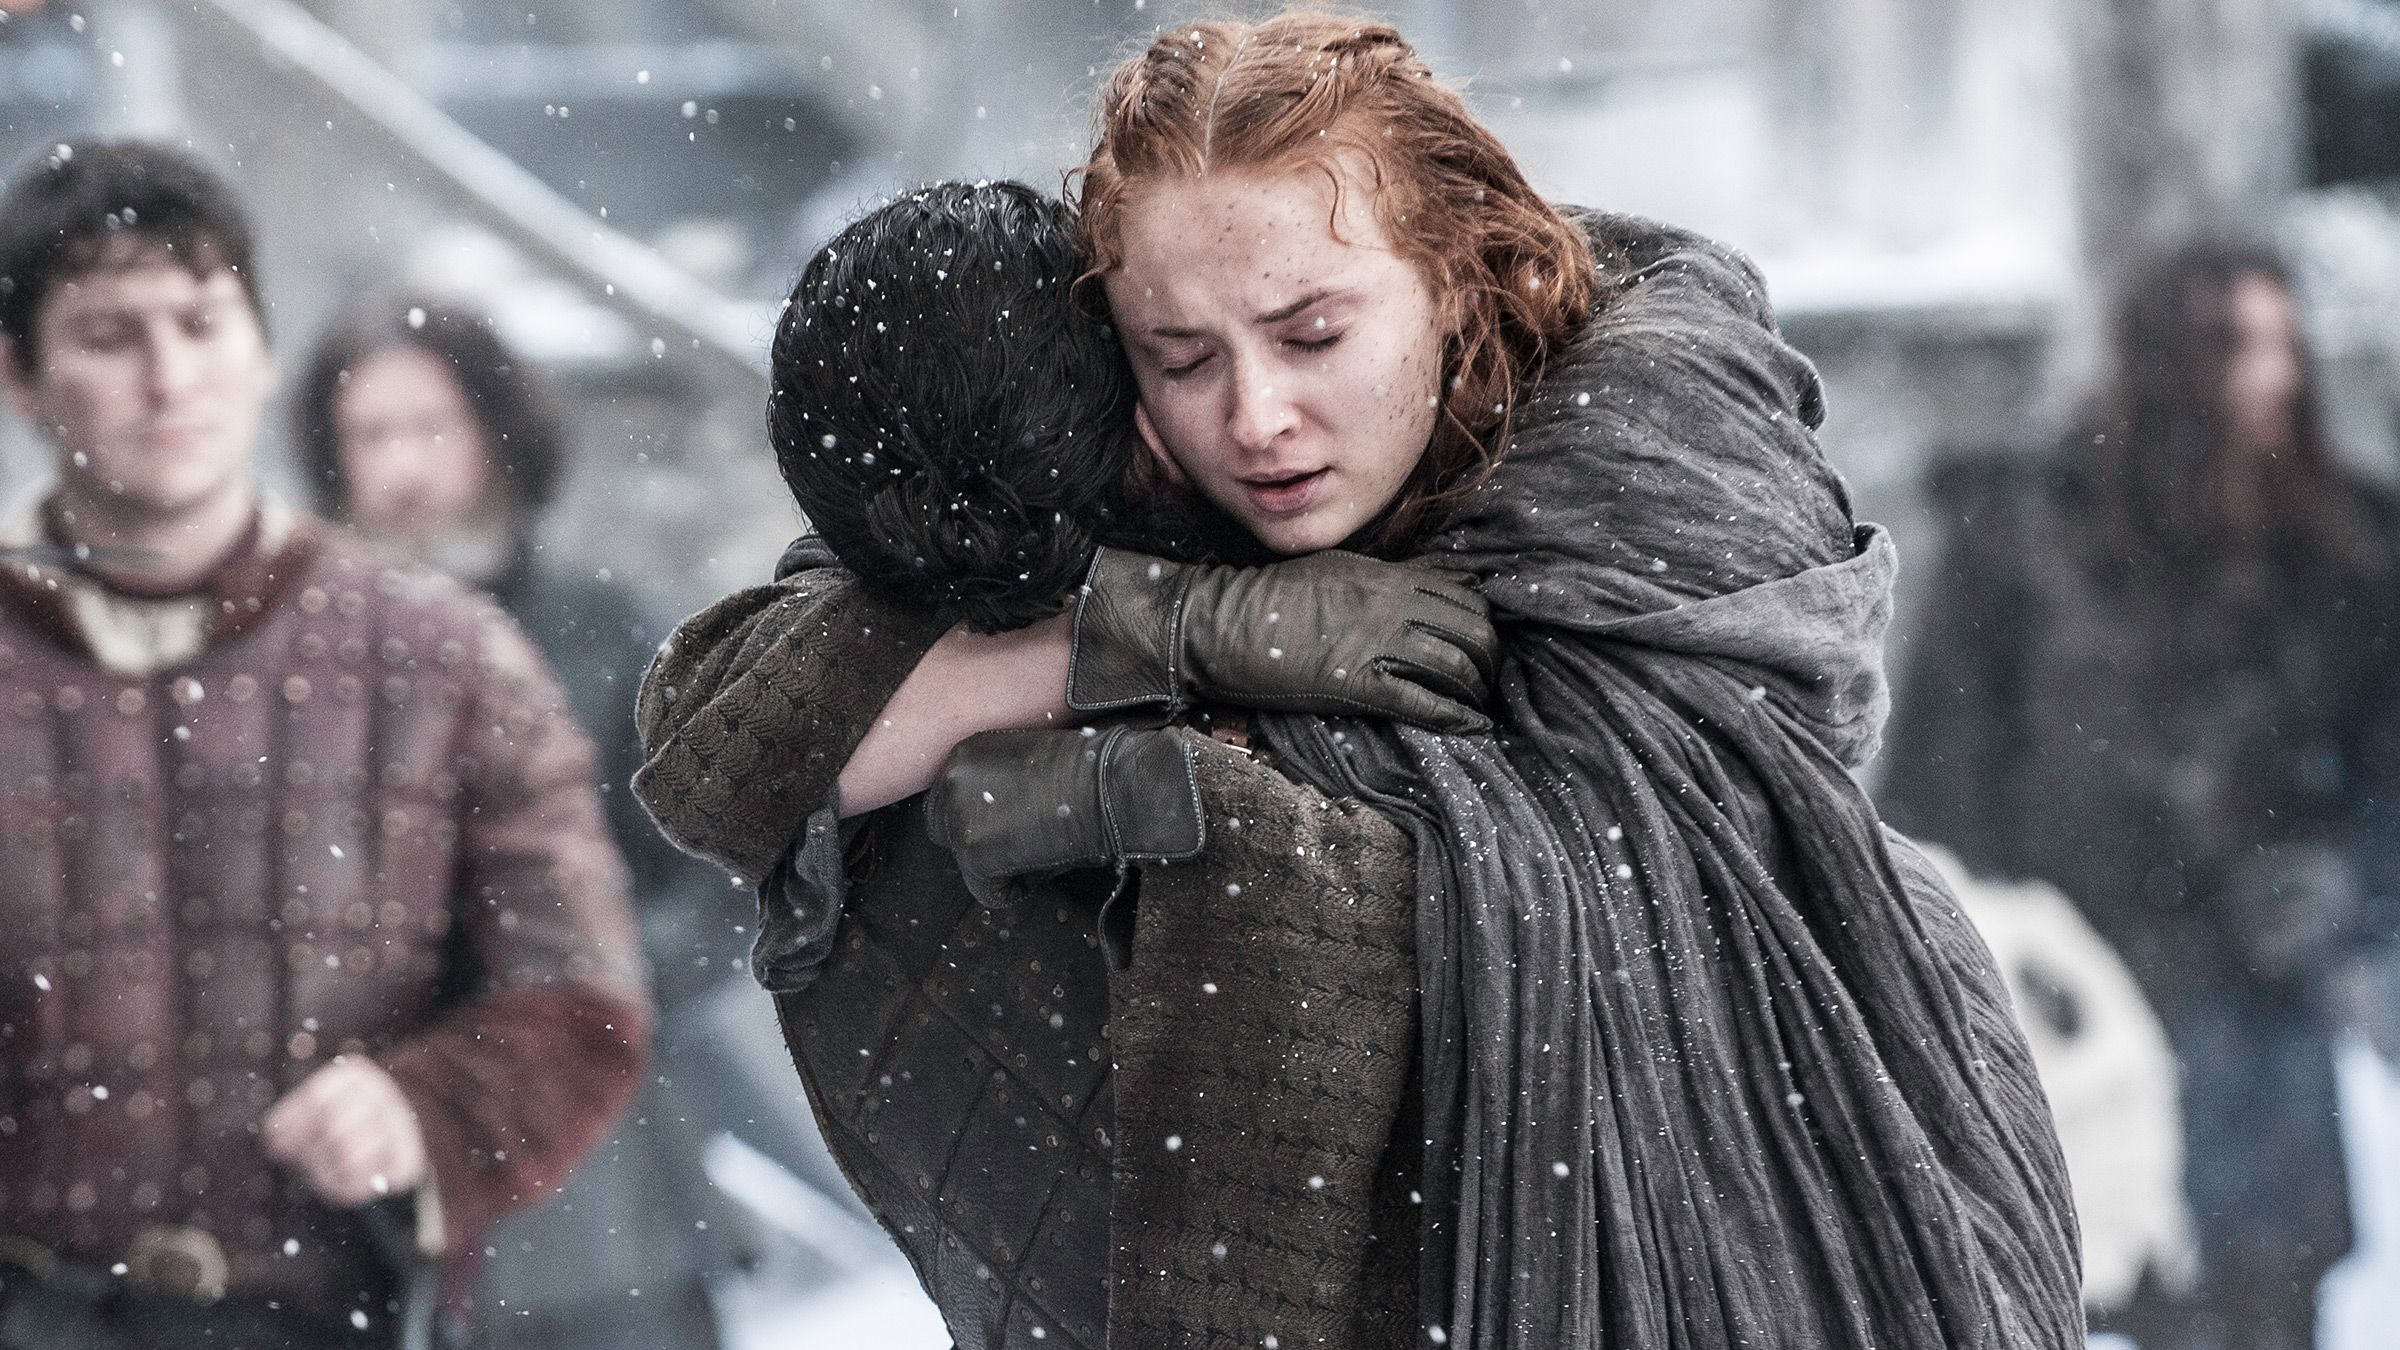 Game of Thrones Viewer's Guide - Season 6, Episode 4